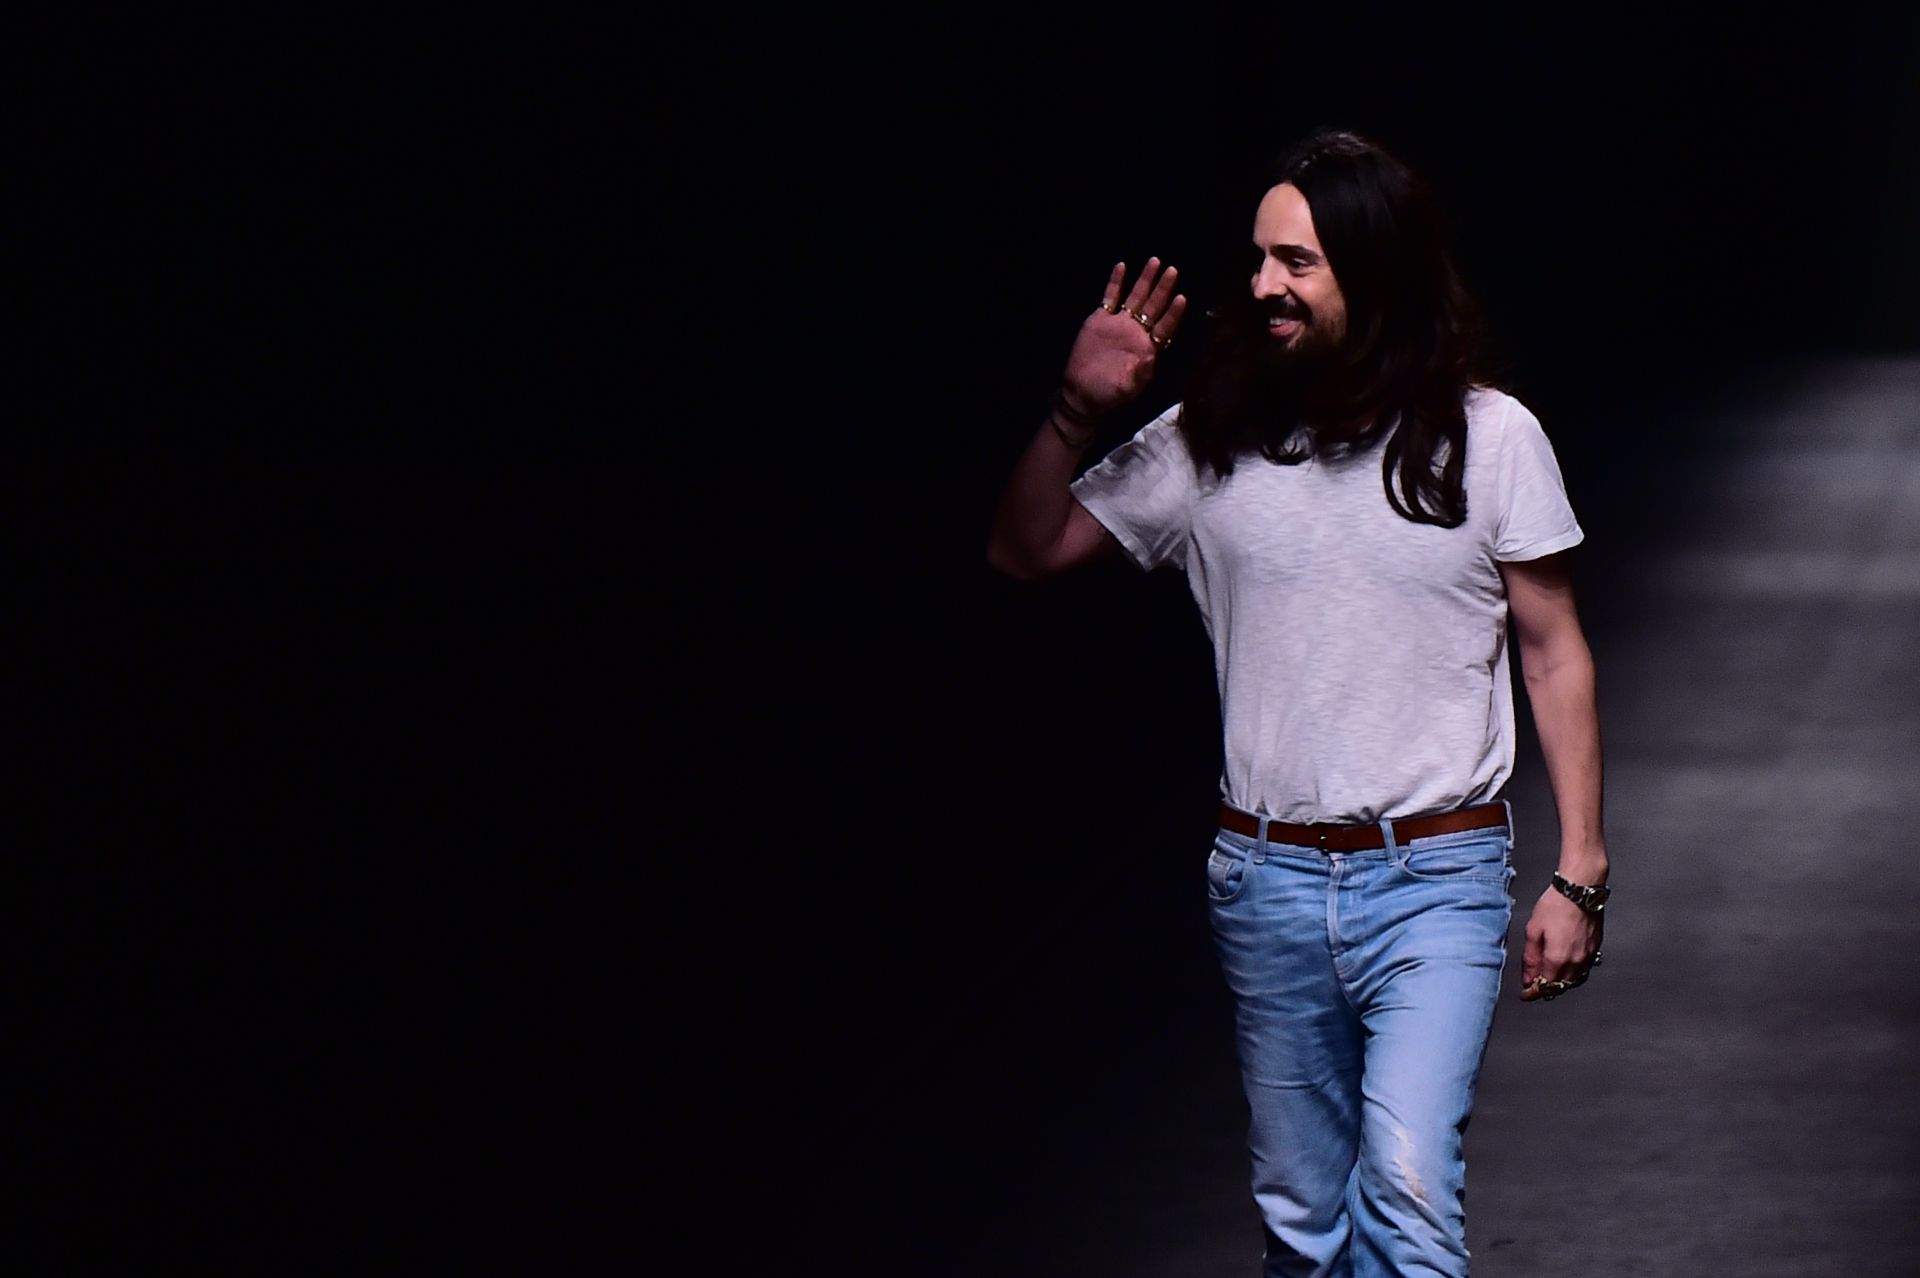 Designer Alessandro Michele walks the runway at the end of the show for fashion house Gucci during the Autumn-Winter 2016 / 2017 Milan Fashion Week on February 24, 2016. / AFP / GIUSEPPE CACACE